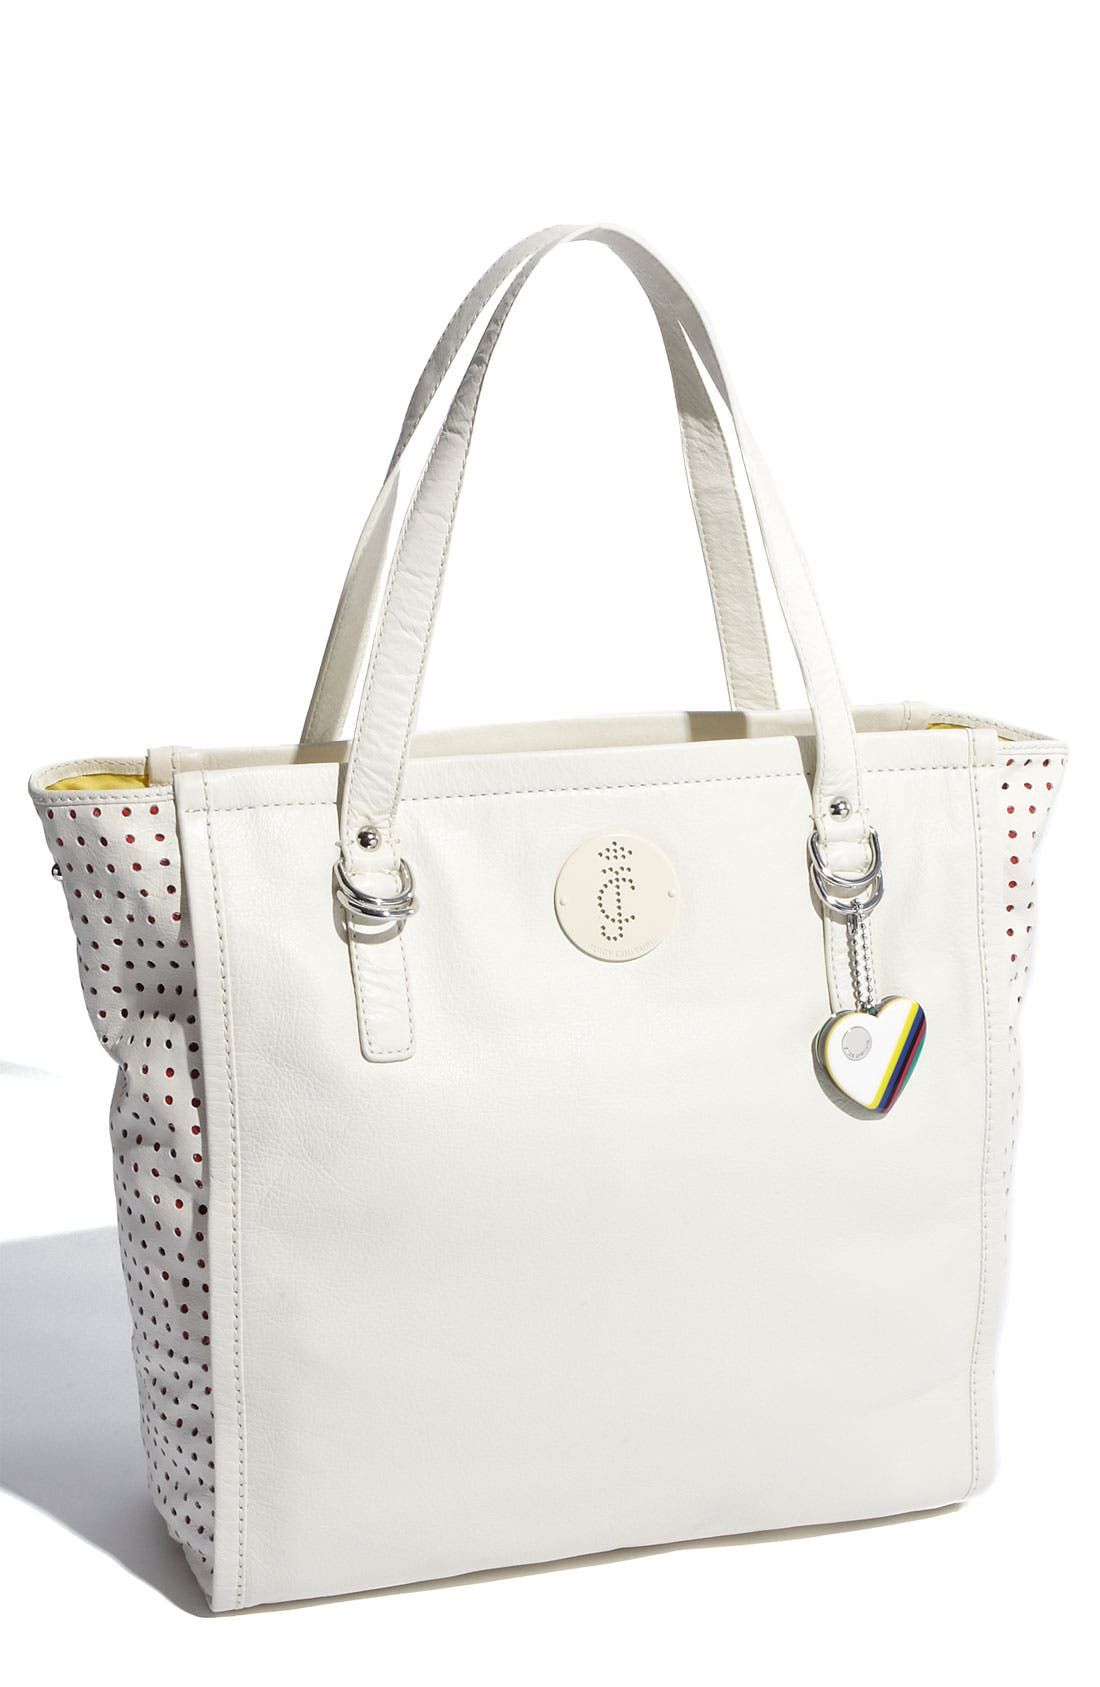 Alternate Image 1 Selected - Juicy Couture 'Paisley Punched Up' Leather Tote